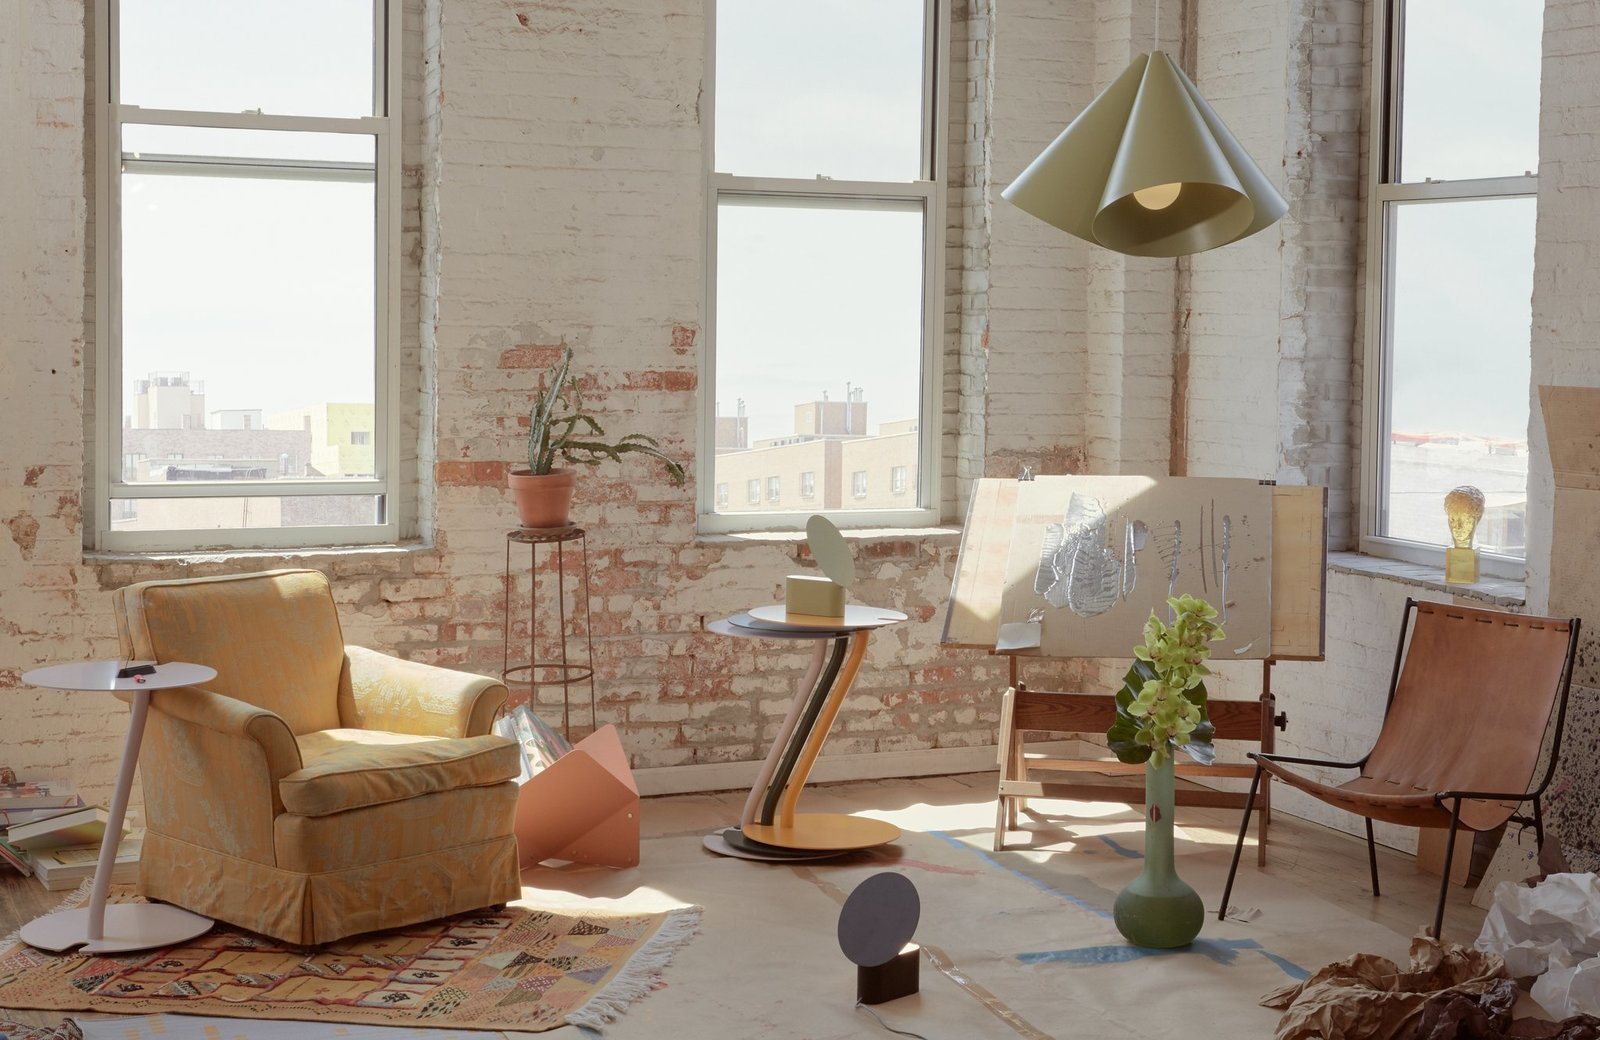 Office, Rug Floor, Craft Room Room Type, and Chair Stylish and functional pieces which help seamlessly integrate your office into your home.  Photo 2 of 6 in Design Digest: Remembering Will Alsop, Elon Musk Makes Bricks, and More